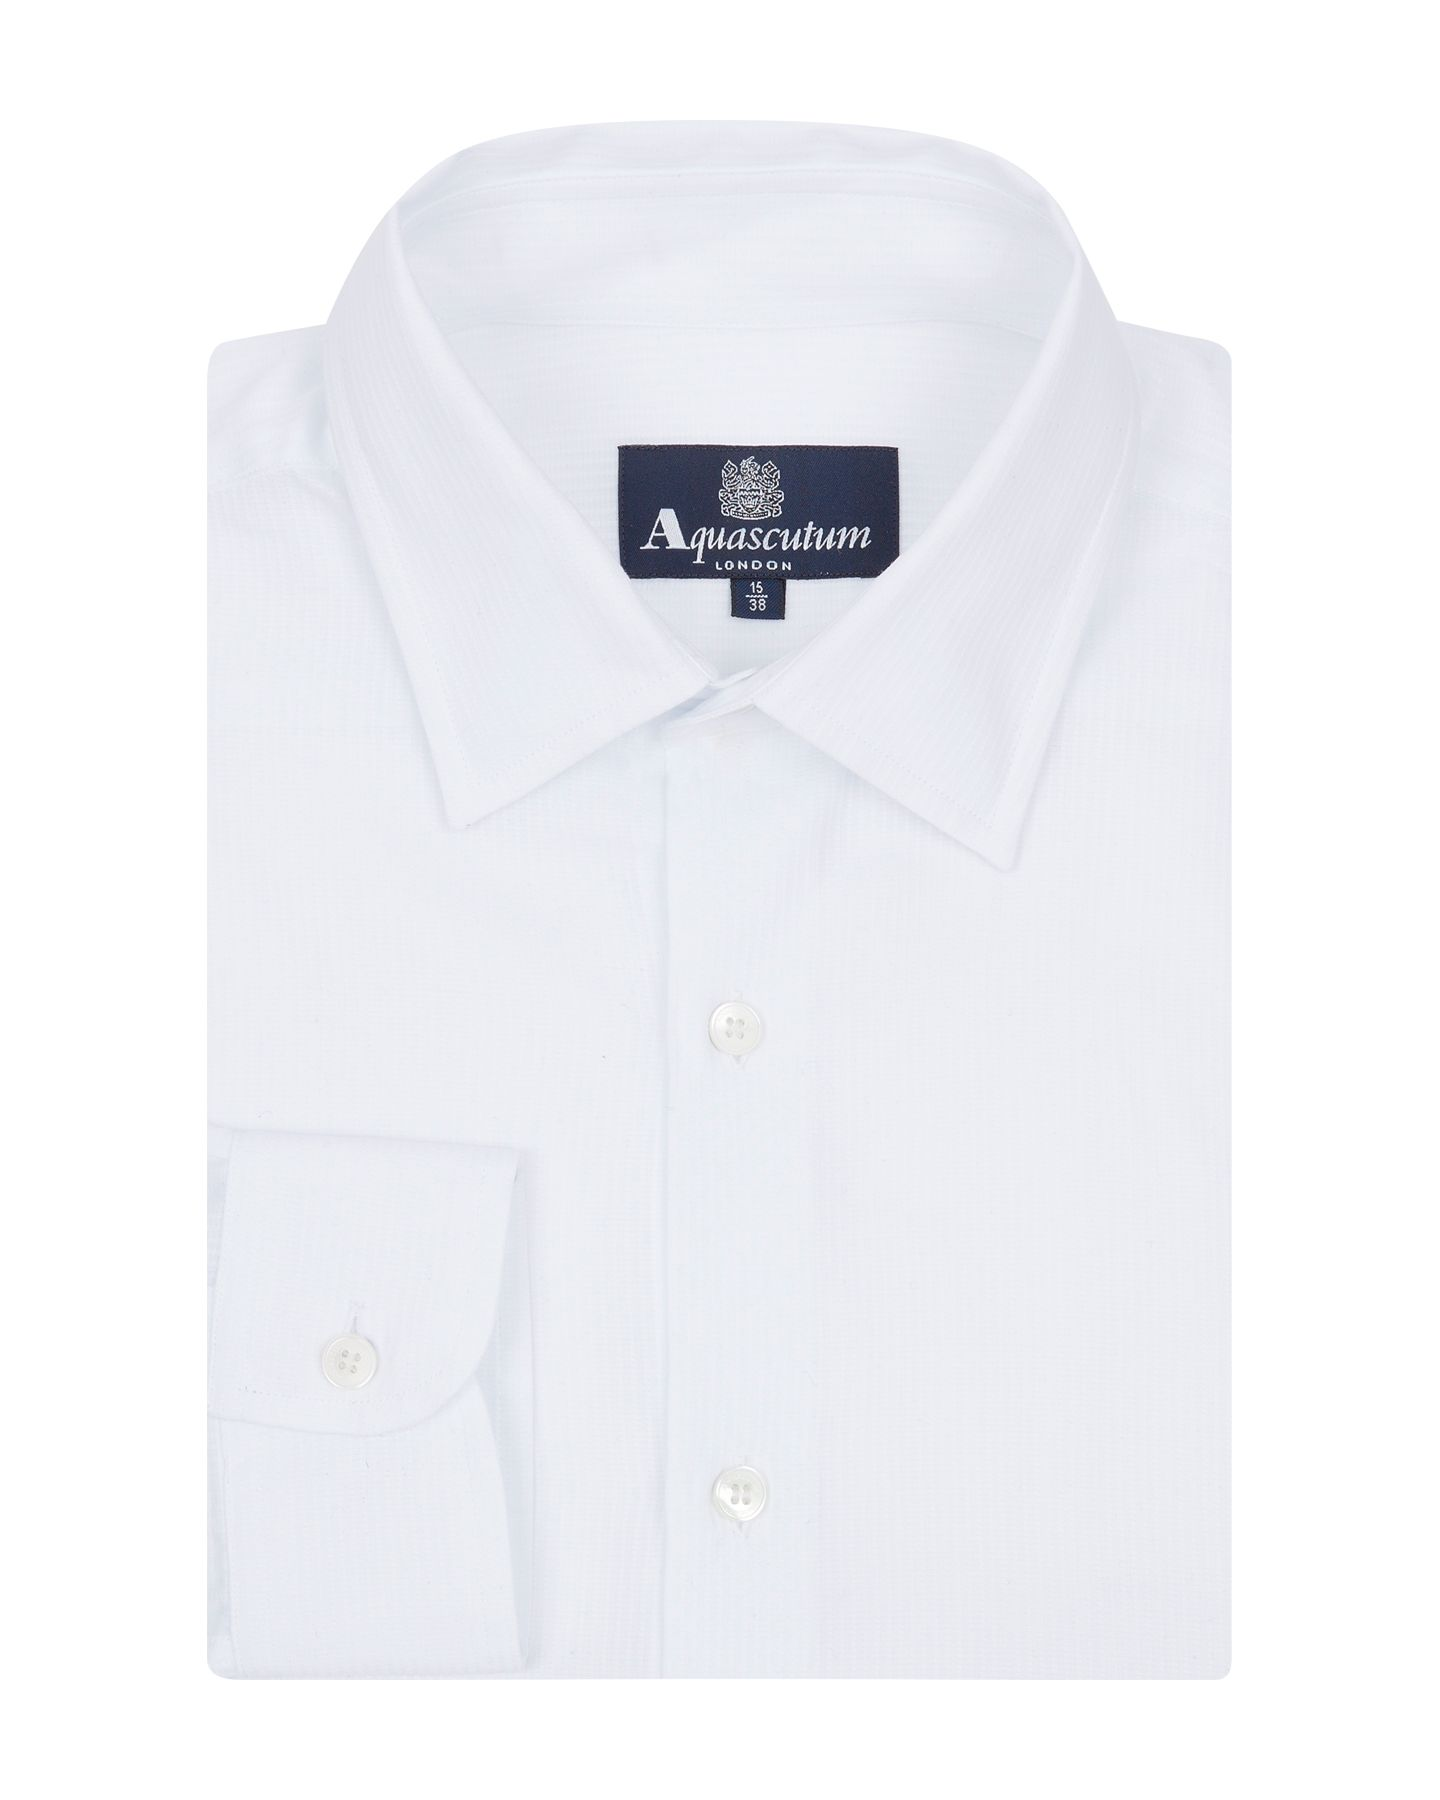 Fraser regular fit long sleeve shirt